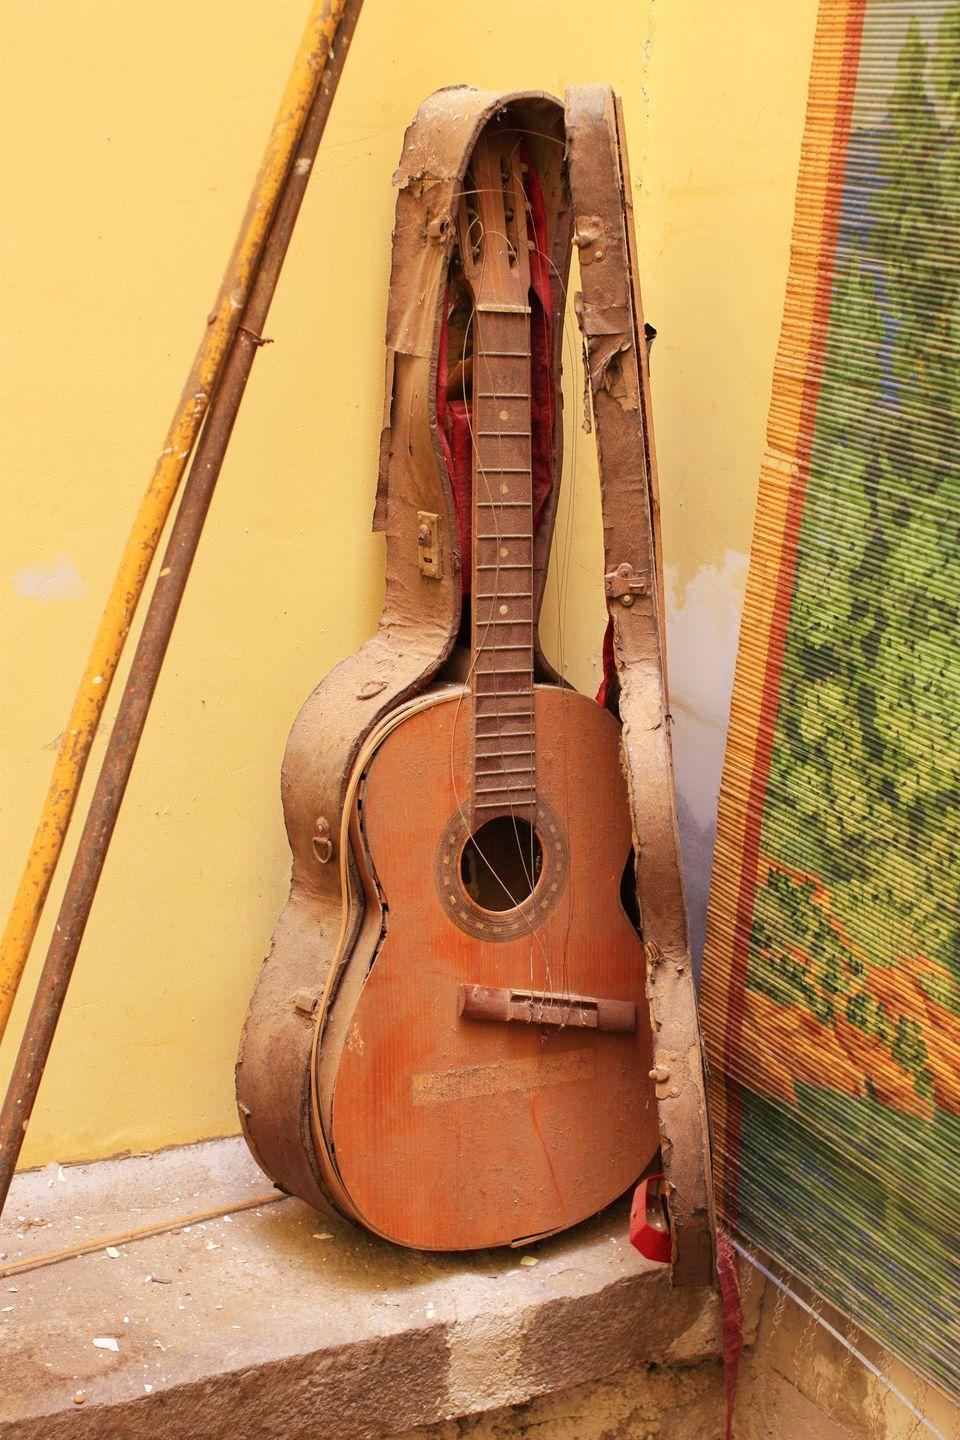 """<p>You probably wouldn't throw away a beautifully made musical instrument, but if you don't want it sitting in your basement—and the damp hasn't gotten to it—you might be able to sell it. If it's a <a href=""""https://www.cnbc.com/2010/10/15/Ten-Most-Valuable-Musical-Instruments.html"""" rel=""""nofollow noopener"""" target=""""_blank"""" data-ylk=""""slk:Stradivari violin or a Fender Stratocaster guitar"""" class=""""link rapid-noclick-resp"""">Stradivari violin or a Fender Stratocaster guitar</a>, it could be worth hundreds of thousands or even millions.</p>"""